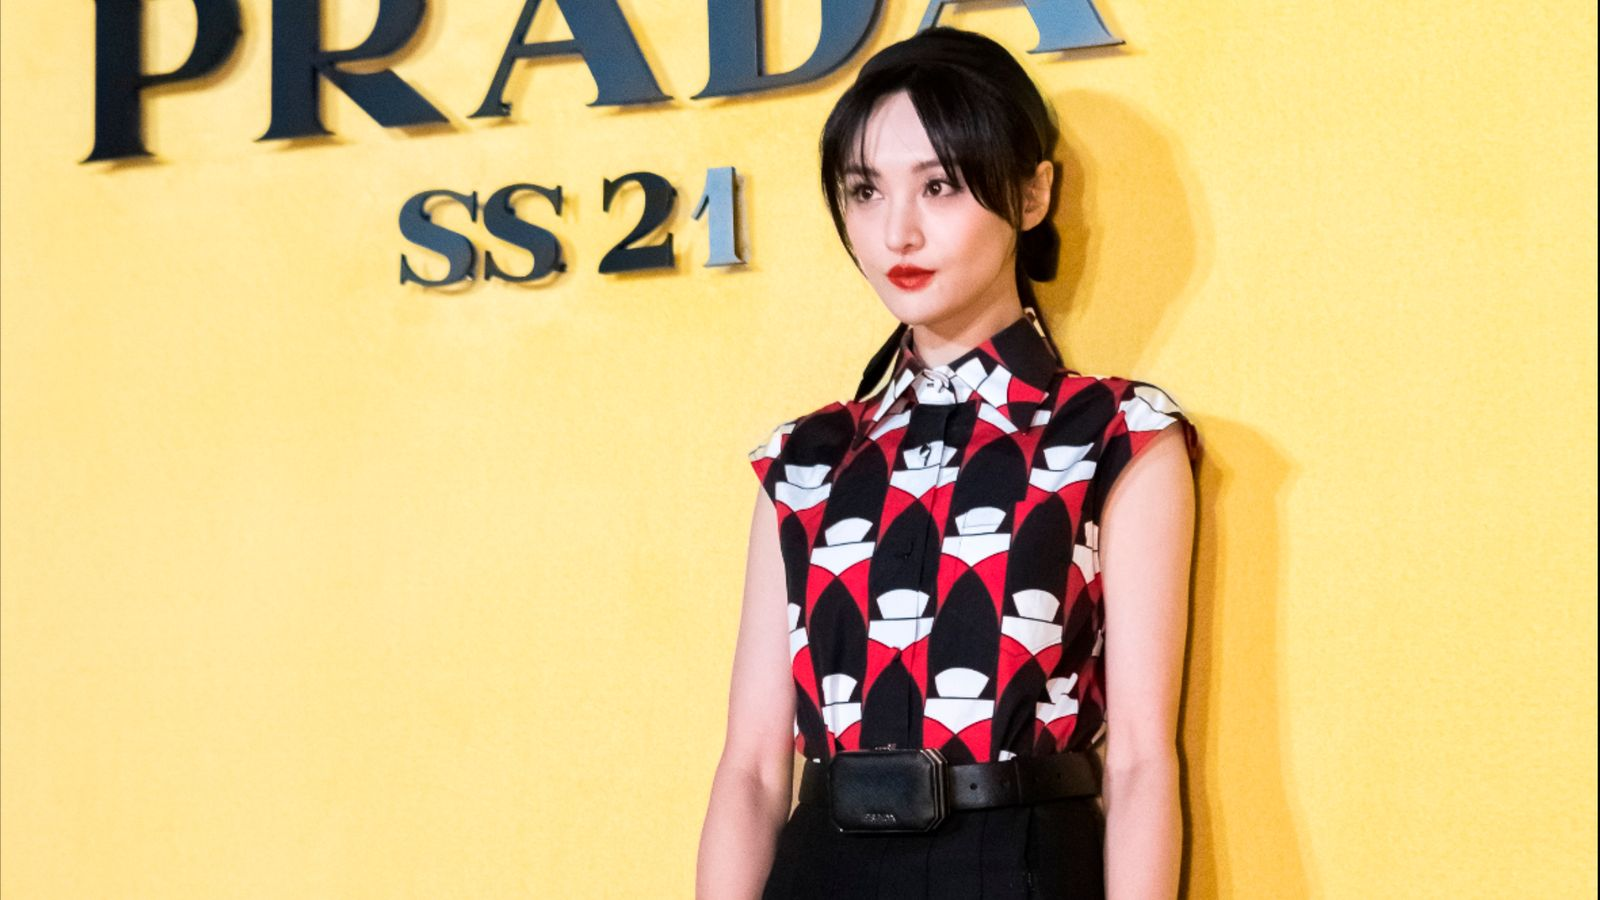 Prada cuts ties with Chinese actress after surrogacy controversy thumbnail